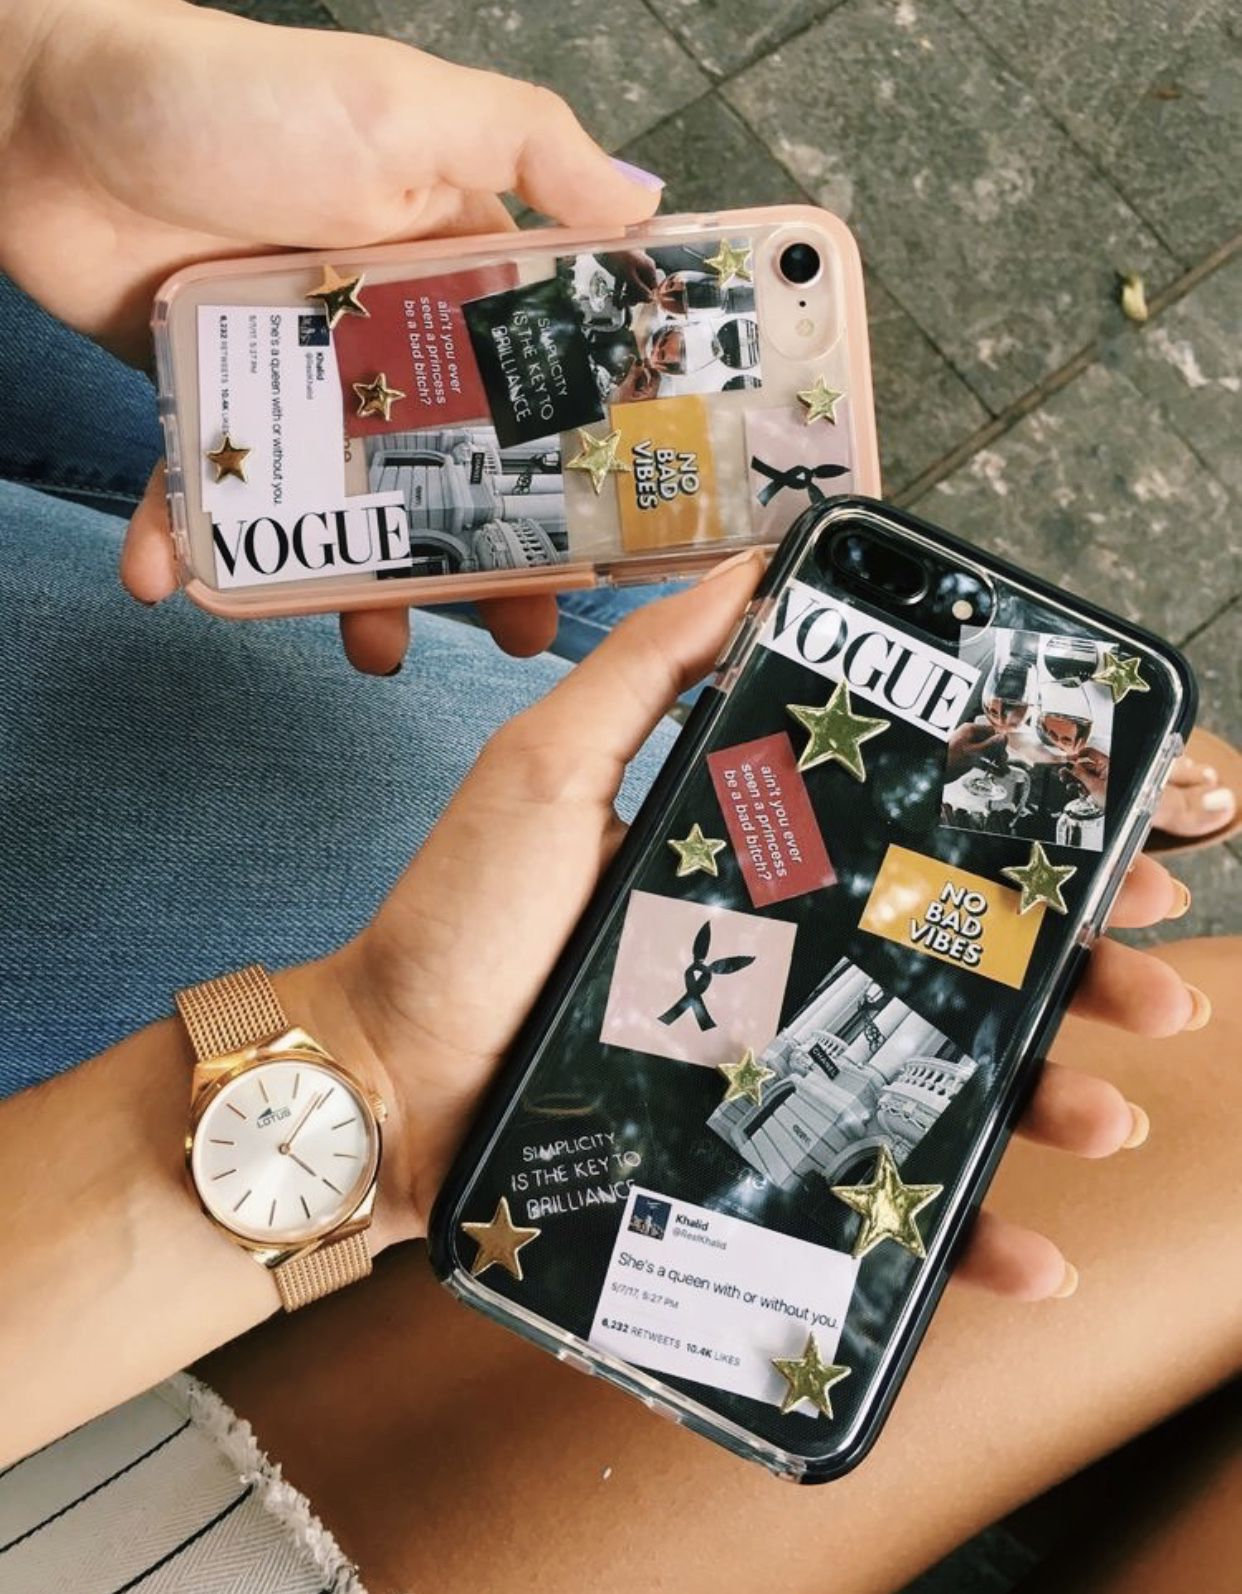 Pin by Maeve Malloy on inspo☆ | Iphone phone cases ...